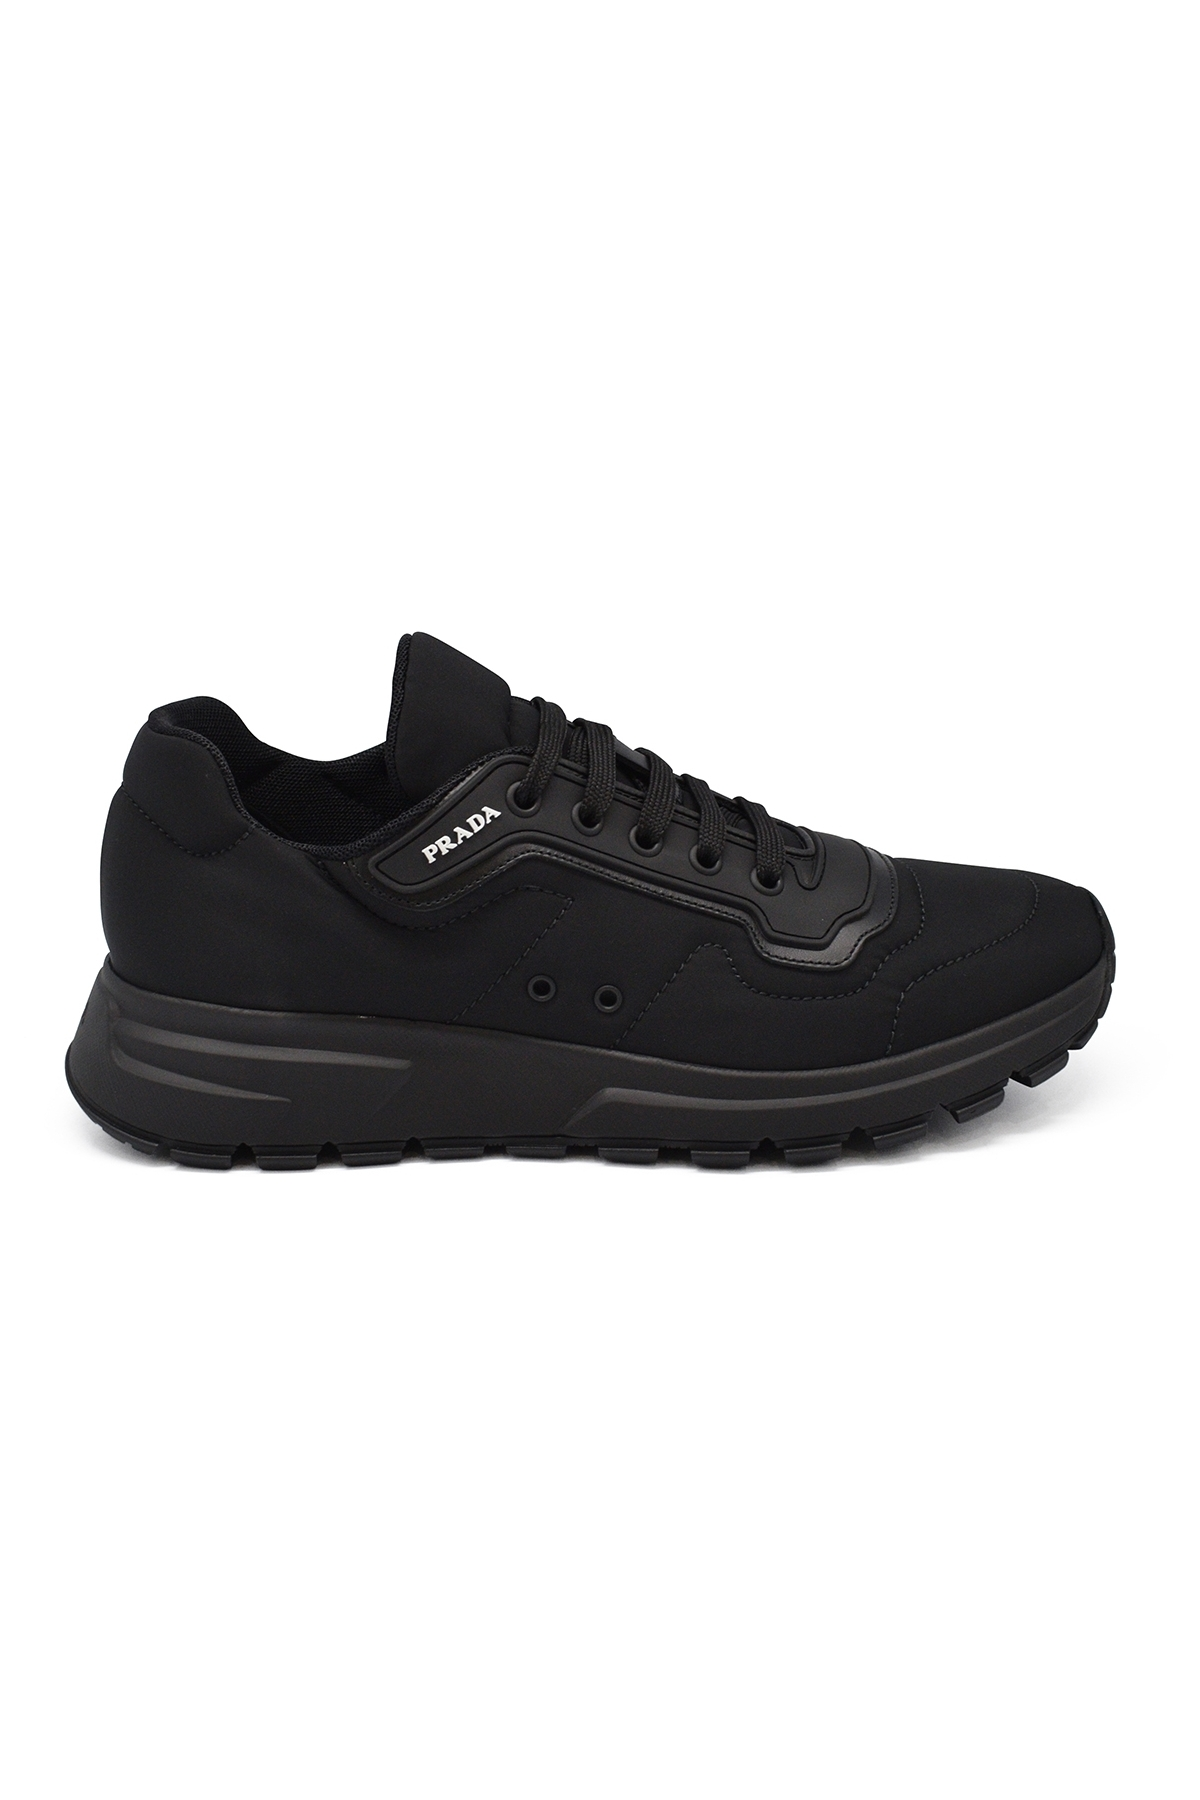 Prada black lace-up sneakers in fabric and leather with white Prada logo and rubber sole